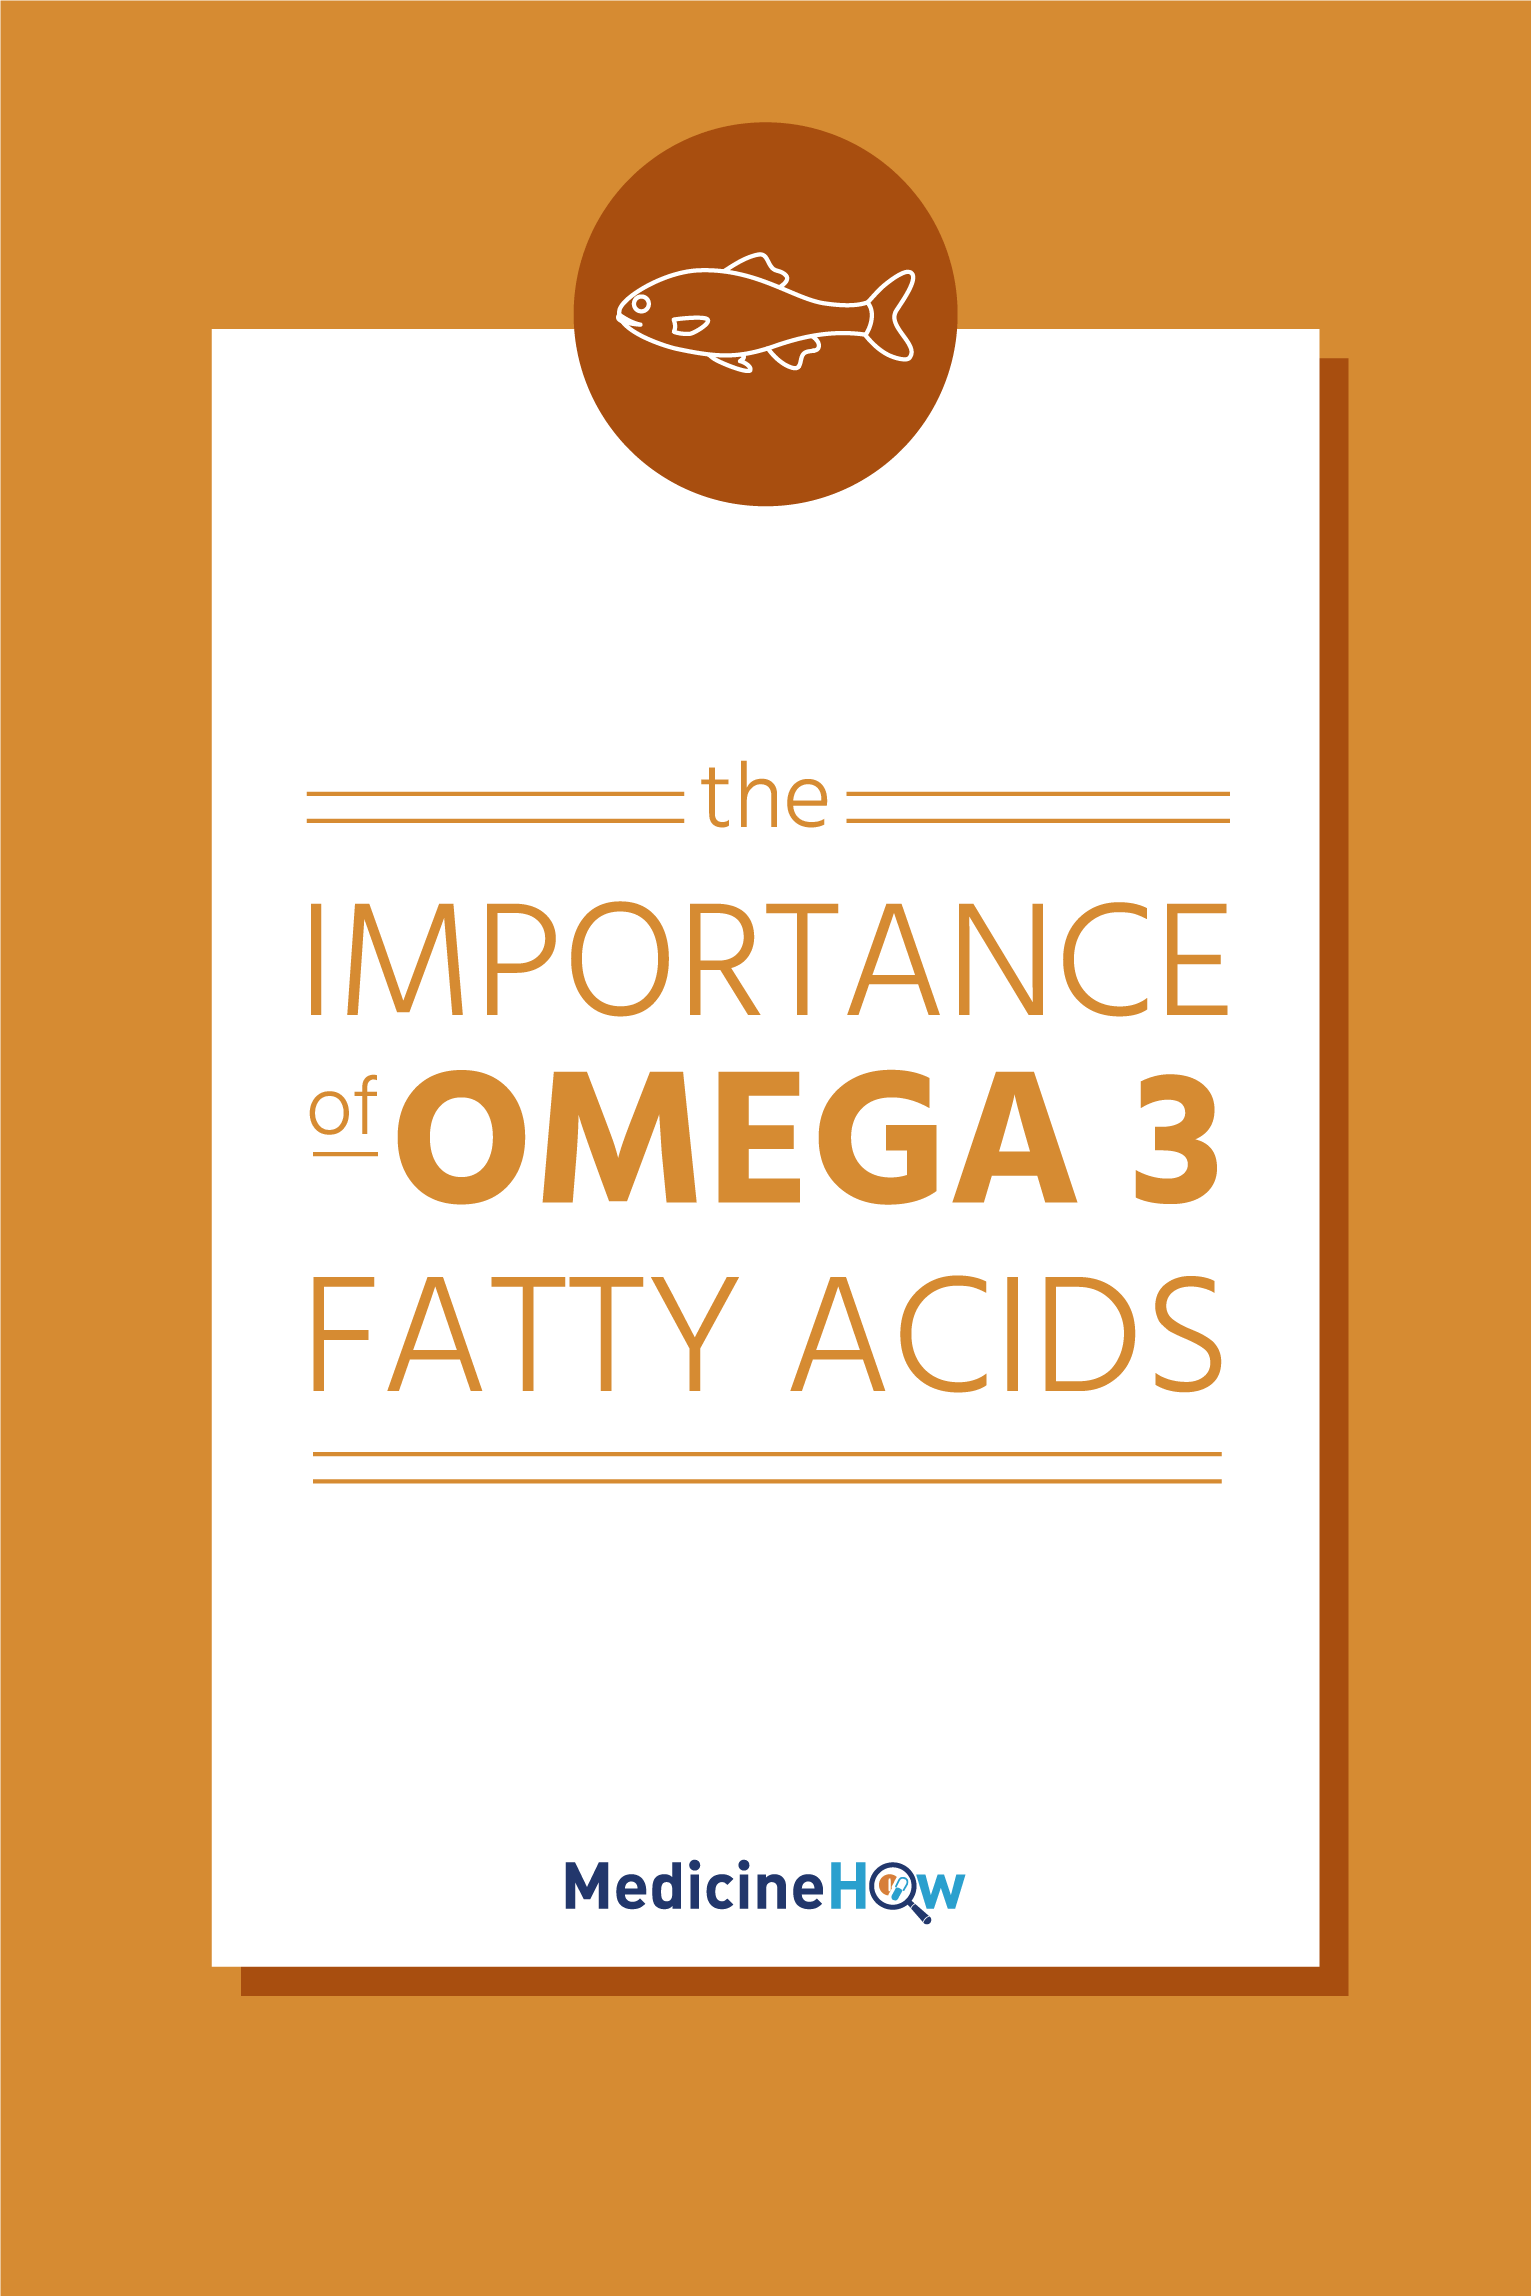 The importance of Omega 3 fatty acids.